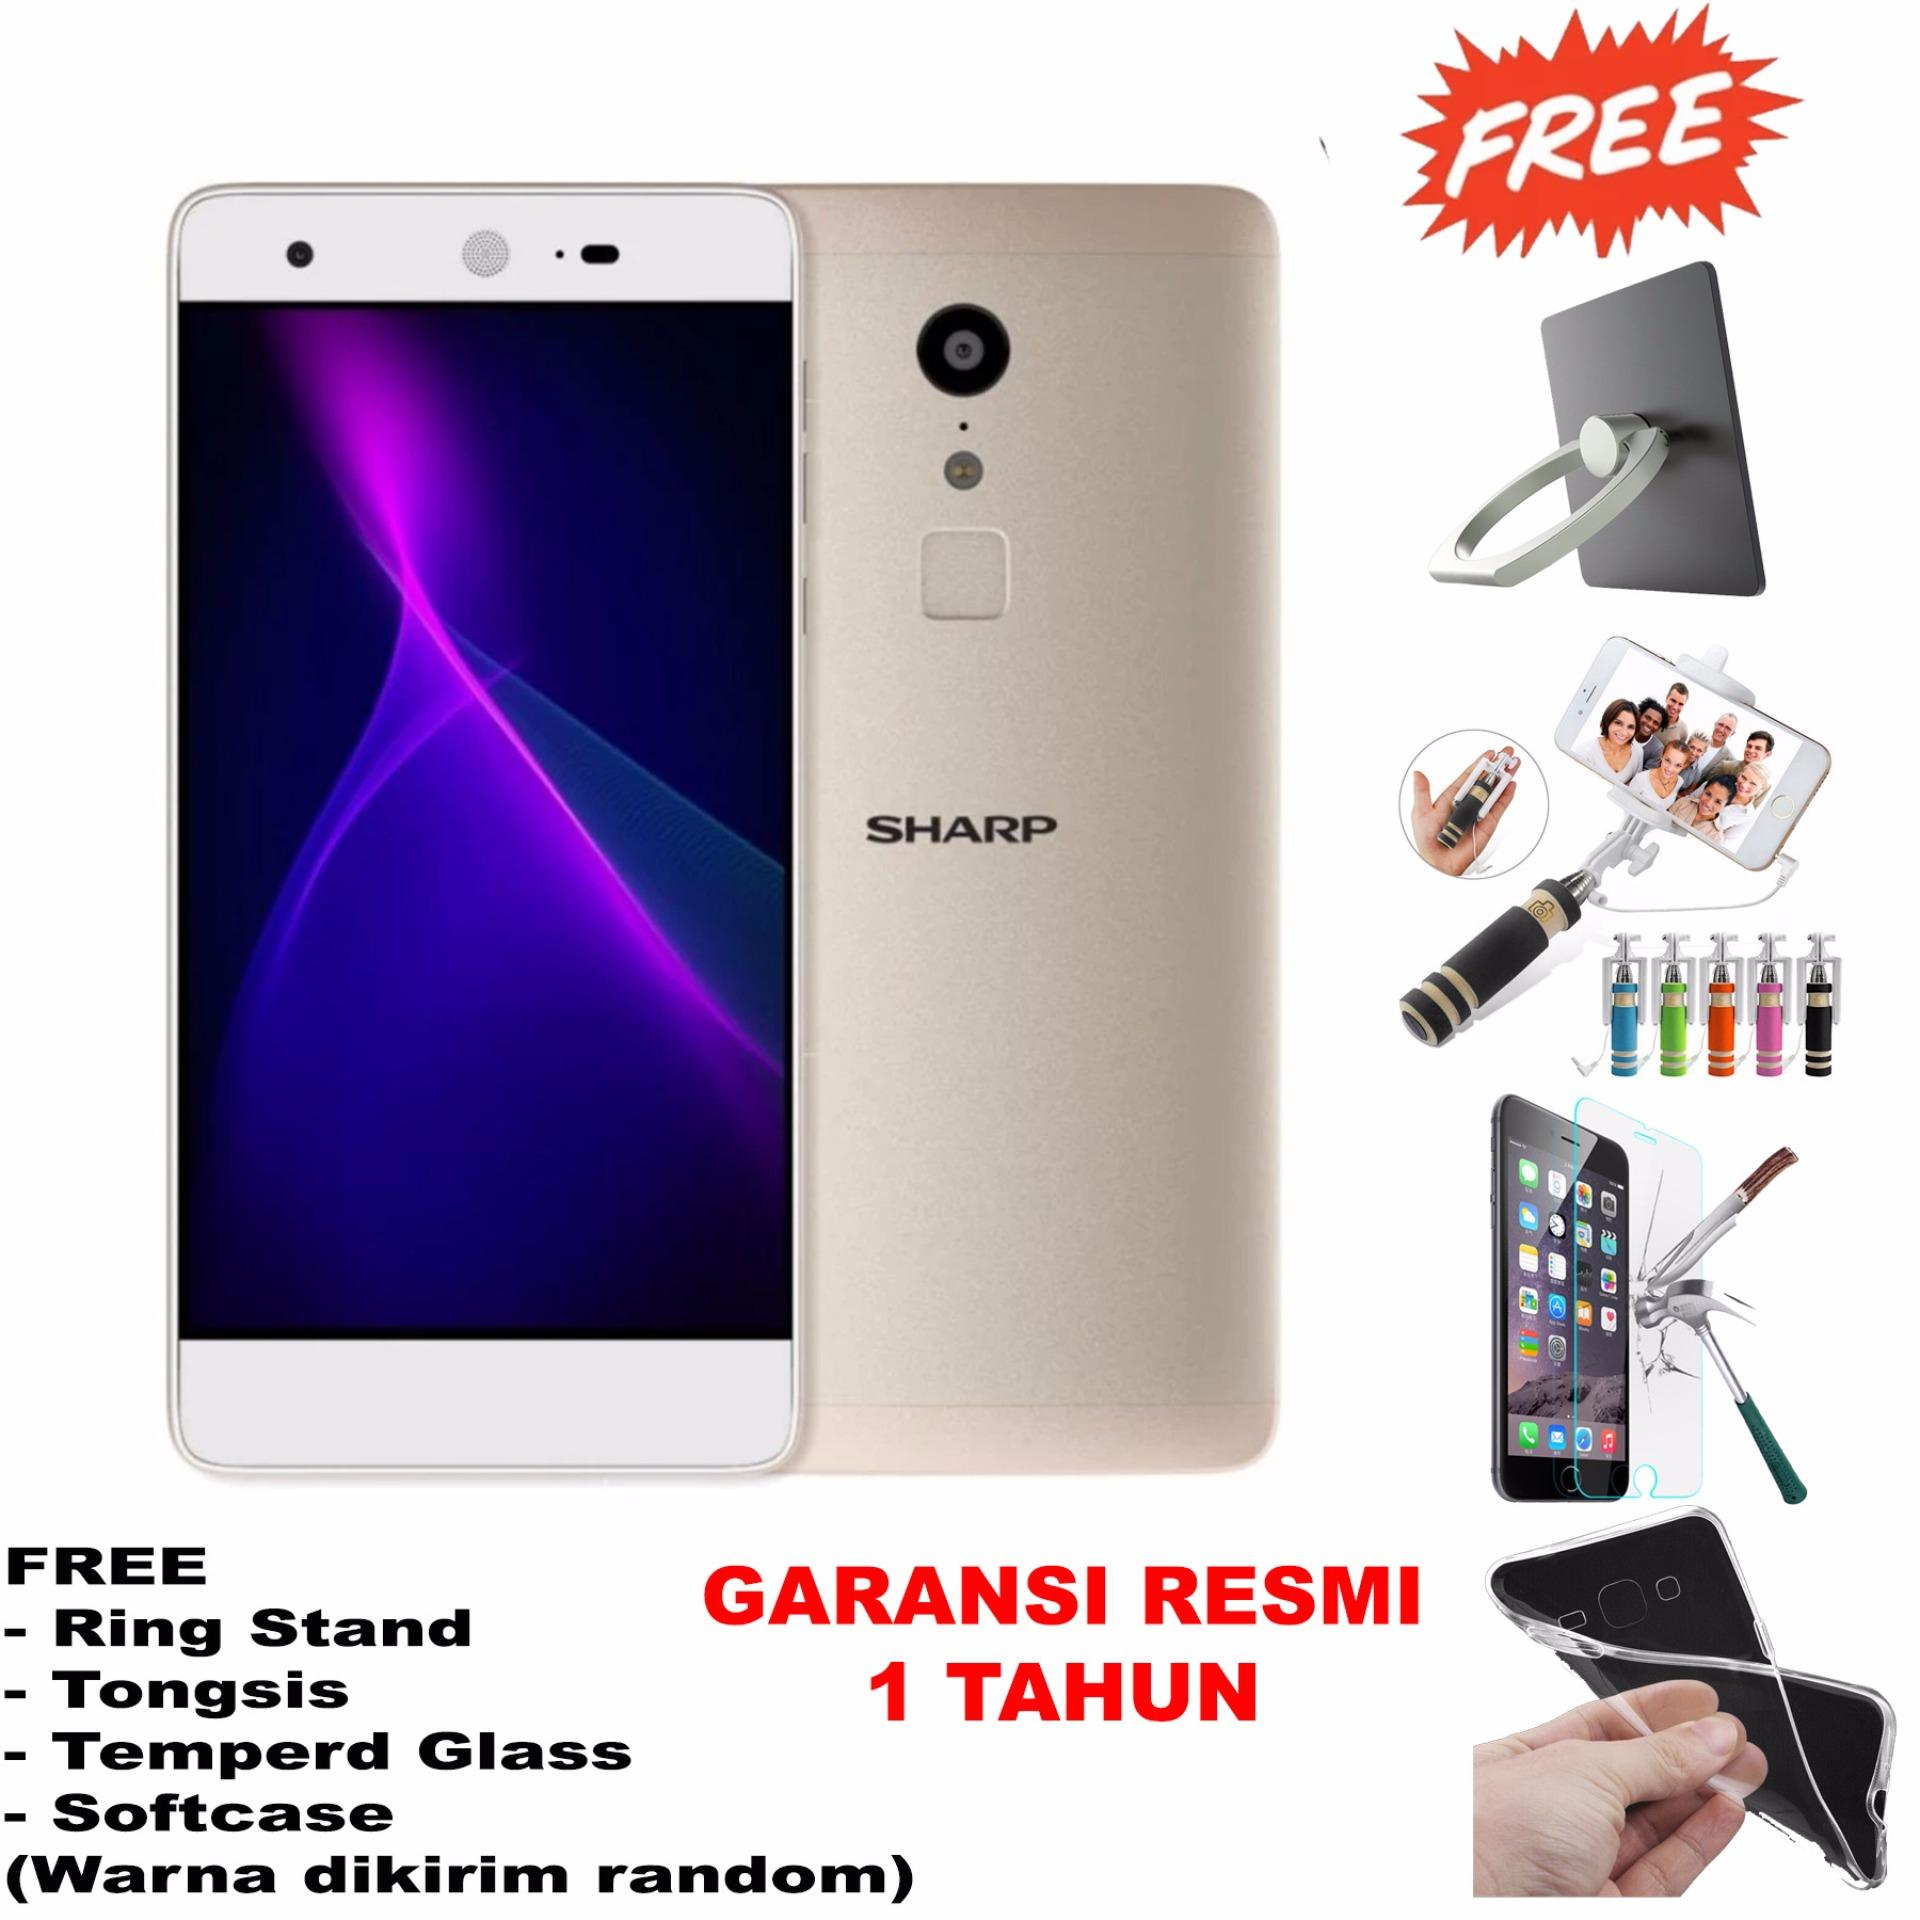 Jual Sharp Z2 Ram 4Gb Deca Core Kamera 16Mp 8Mp Free 4 Item Accessories Gold Baru